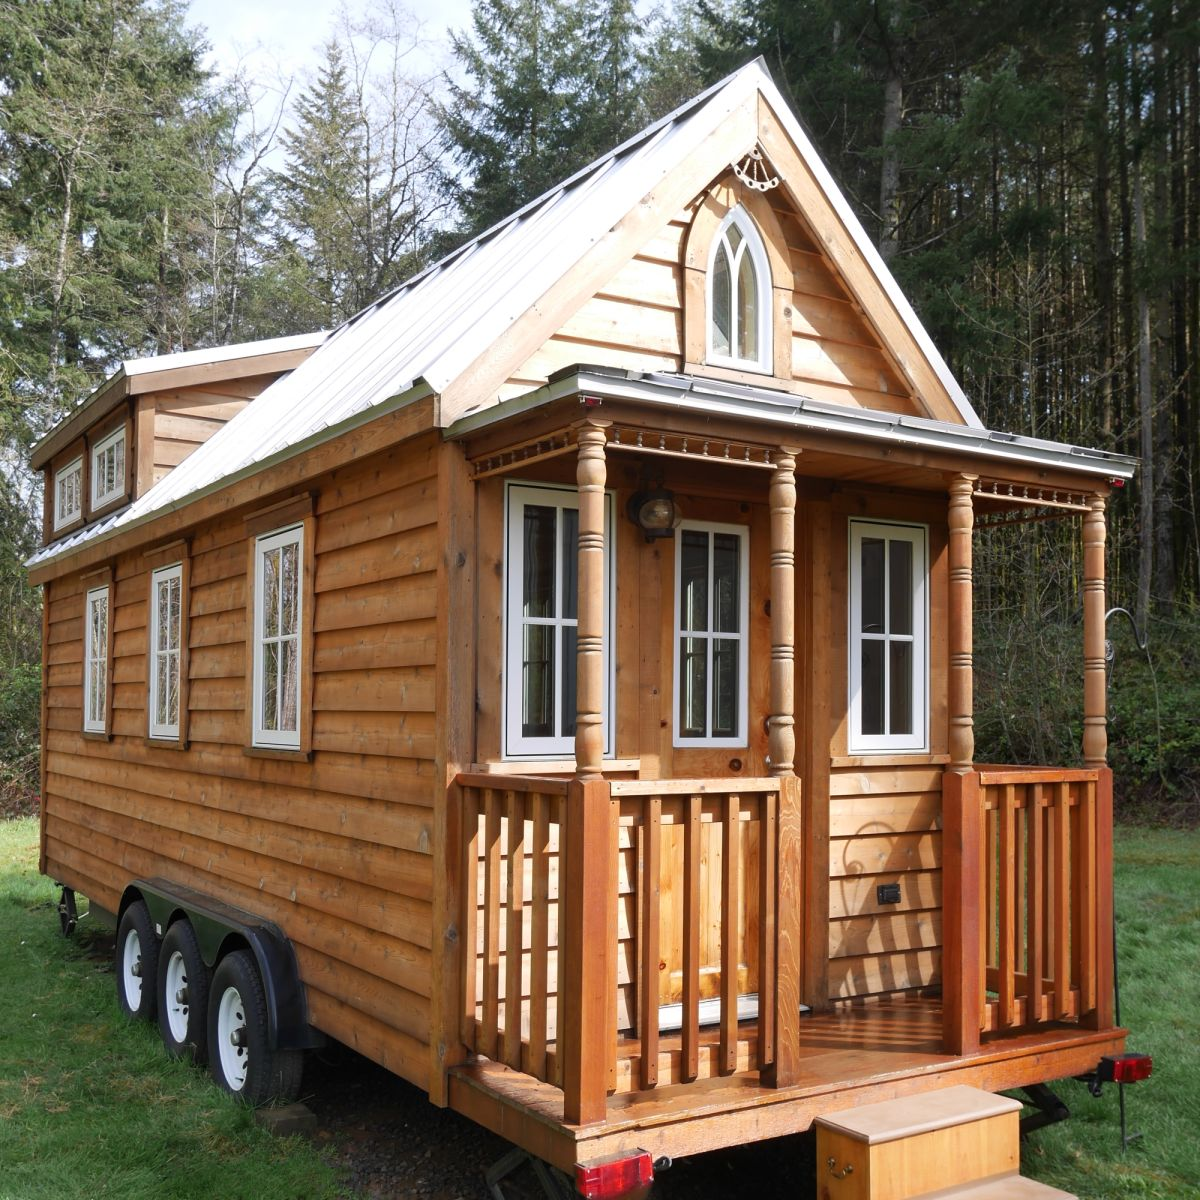 Charming Tumbleweed Tiny House on Wheels with 23 sleeping lofts! - Tiny  House Trailer for Sale in Kelso, Washington - Tiny House Listings